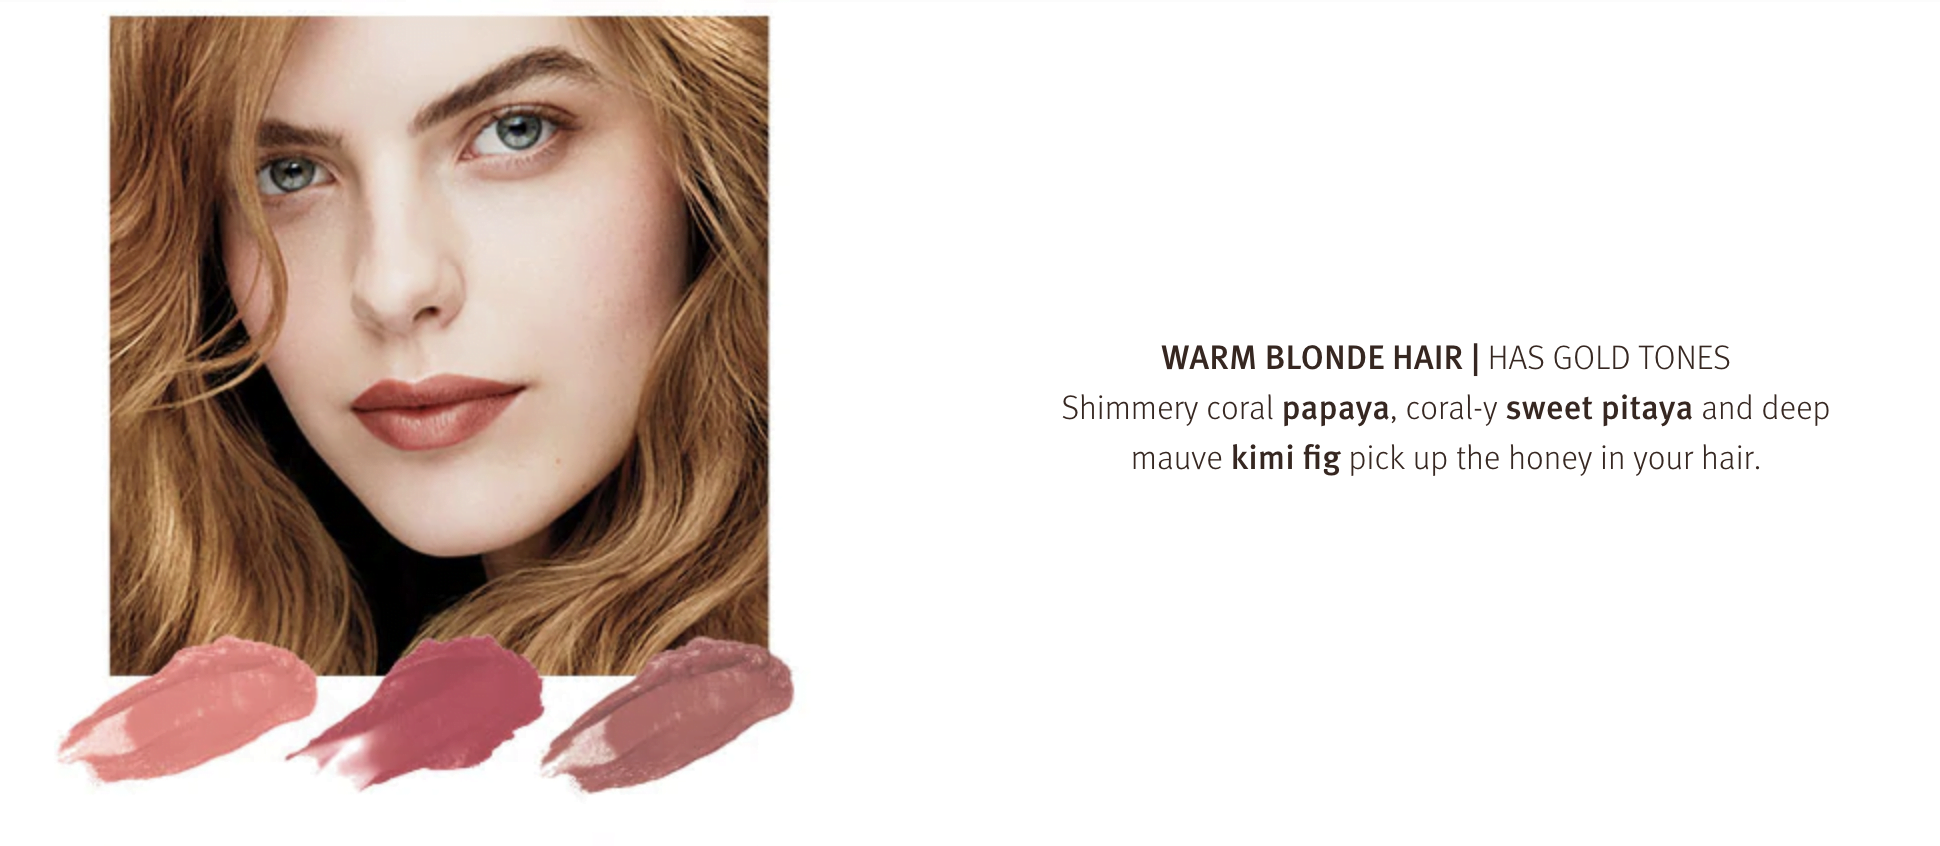 Warm blonde hair has gold tones, we have the perfect lip shade at Zucci to match!